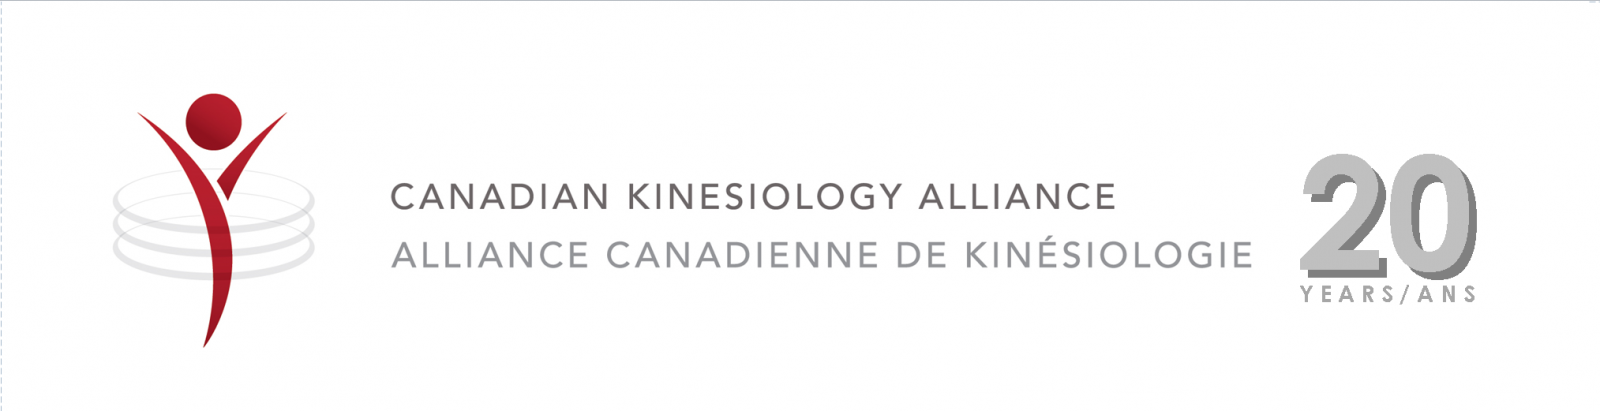 Alliance canadienne de kinésiologie - Logo